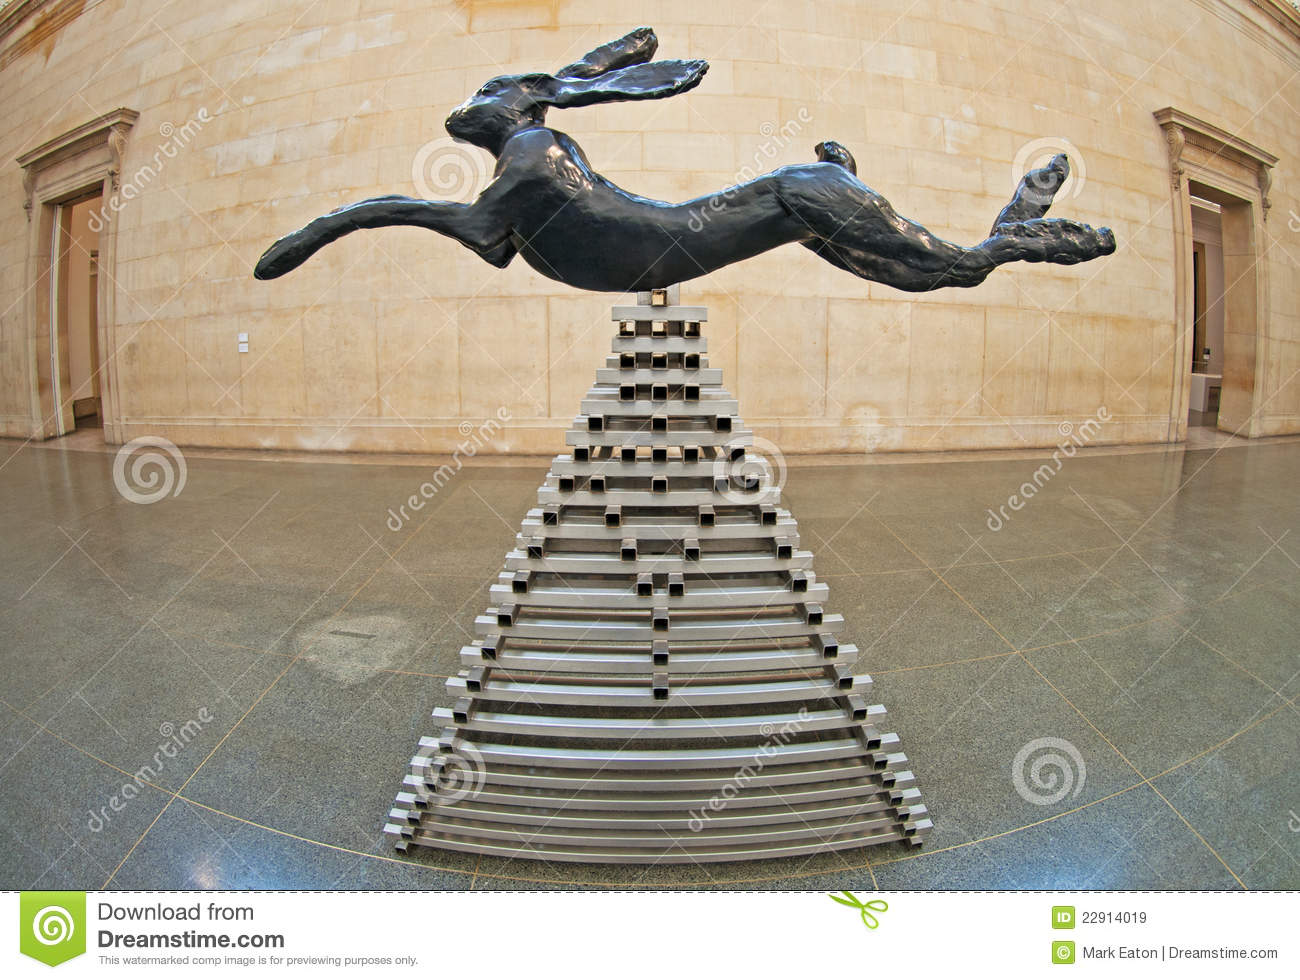 Download Leaping Hare By Barry Flanagan Editorial Stock Image - Image of building, britain: 22914019